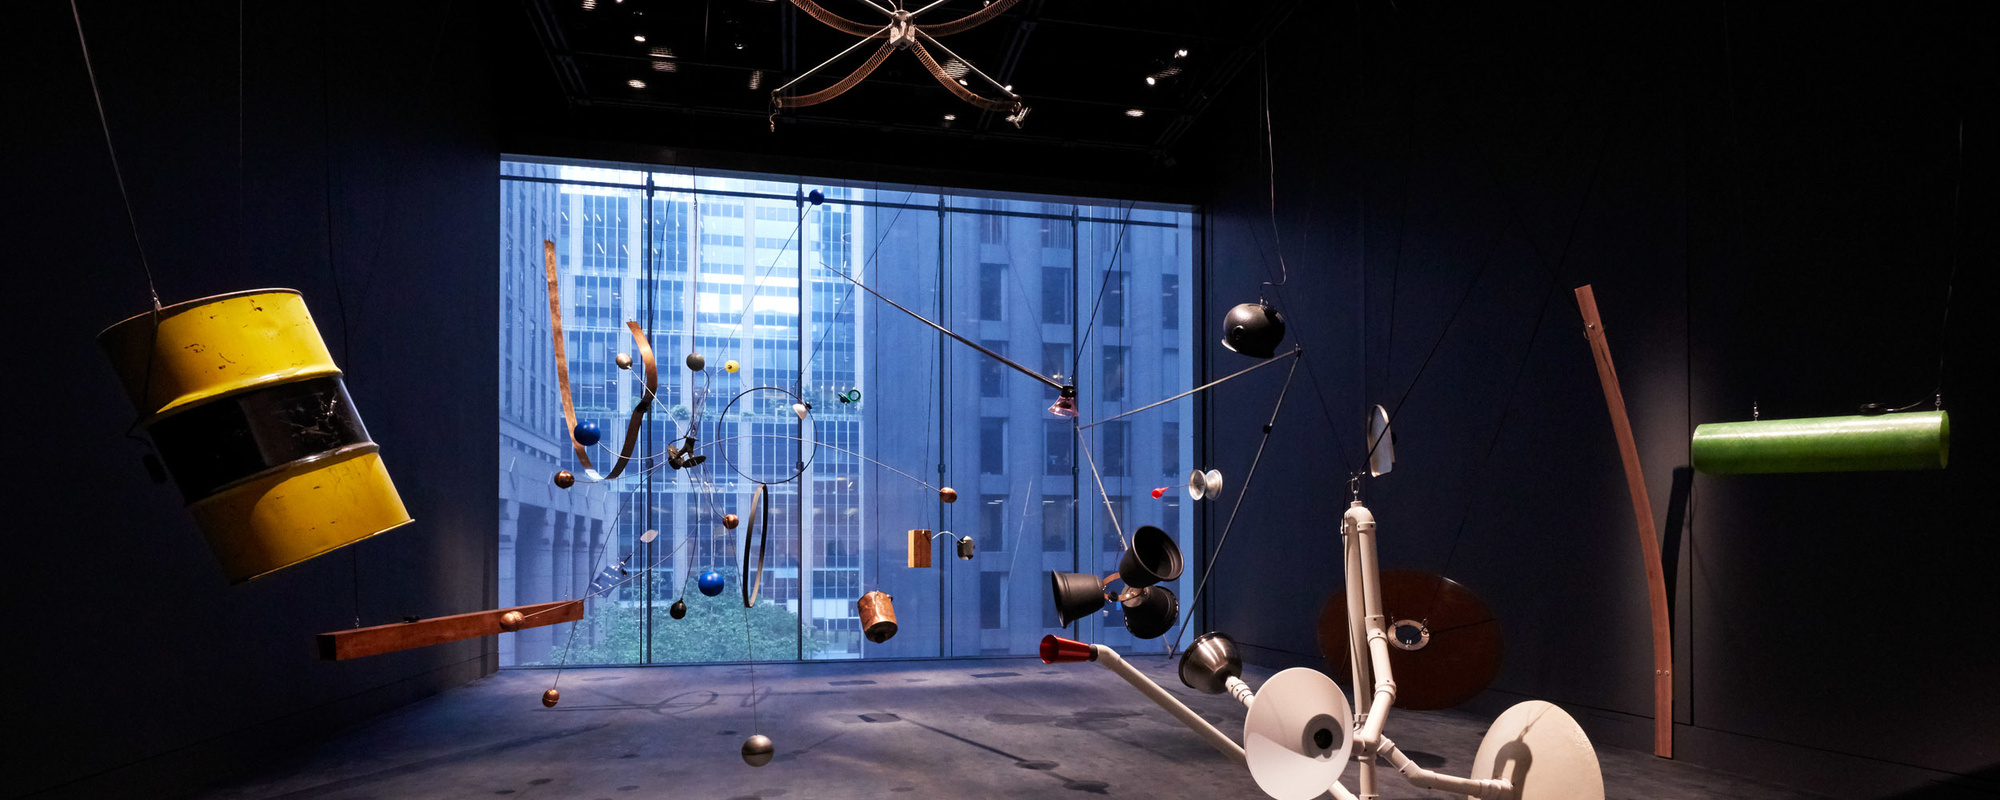 Rainforest V (variation 1). 1973/2015. Twenty objects, sound. Dimensions variable. Conceived by David Tudor, realized by Composers Inside Electronics, Inc. (John Driscoll, Phil Edelstein, and Matt Rogalsky). The Museum of Modern Art, New York. Committee on Media and Performance Art Funds. © 2019 David Tudor and Composers Inside Electronics Inc. Installation view, October 21, 2019–January 5, 2020, The Museum of Modern Art, New York. Image © 2019 The Museum of Modern Art. Photo: Heidi Bohnenkamp